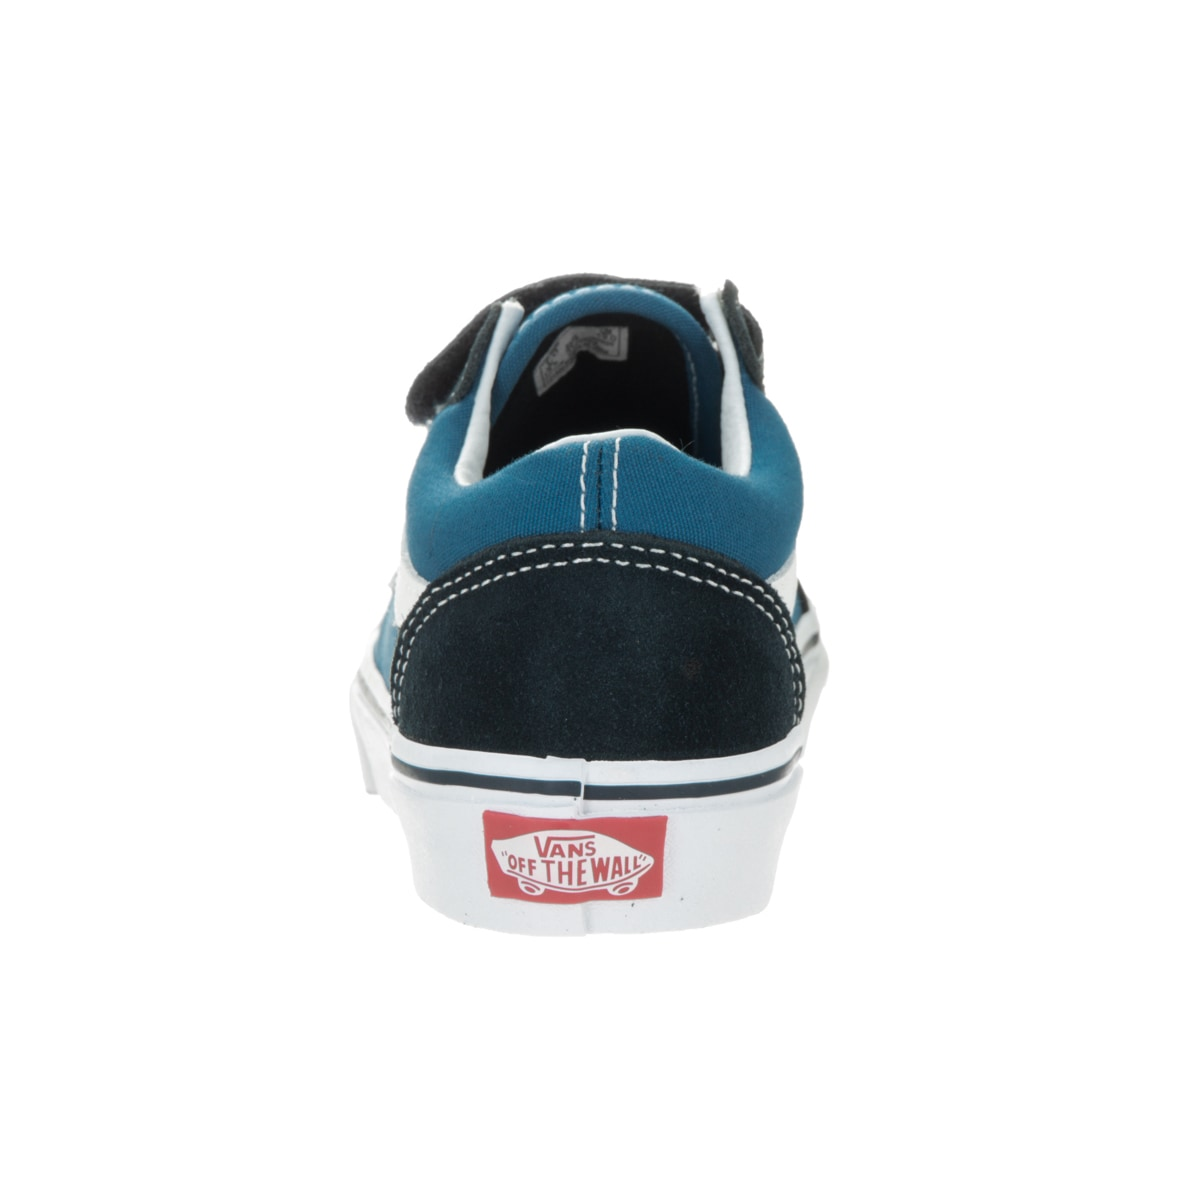 a4759bc872 Shop Vans Kids Old Skool V Navy True White Skate Shoe - Free Shipping On  Orders Over  45 - Overstock - 13344514